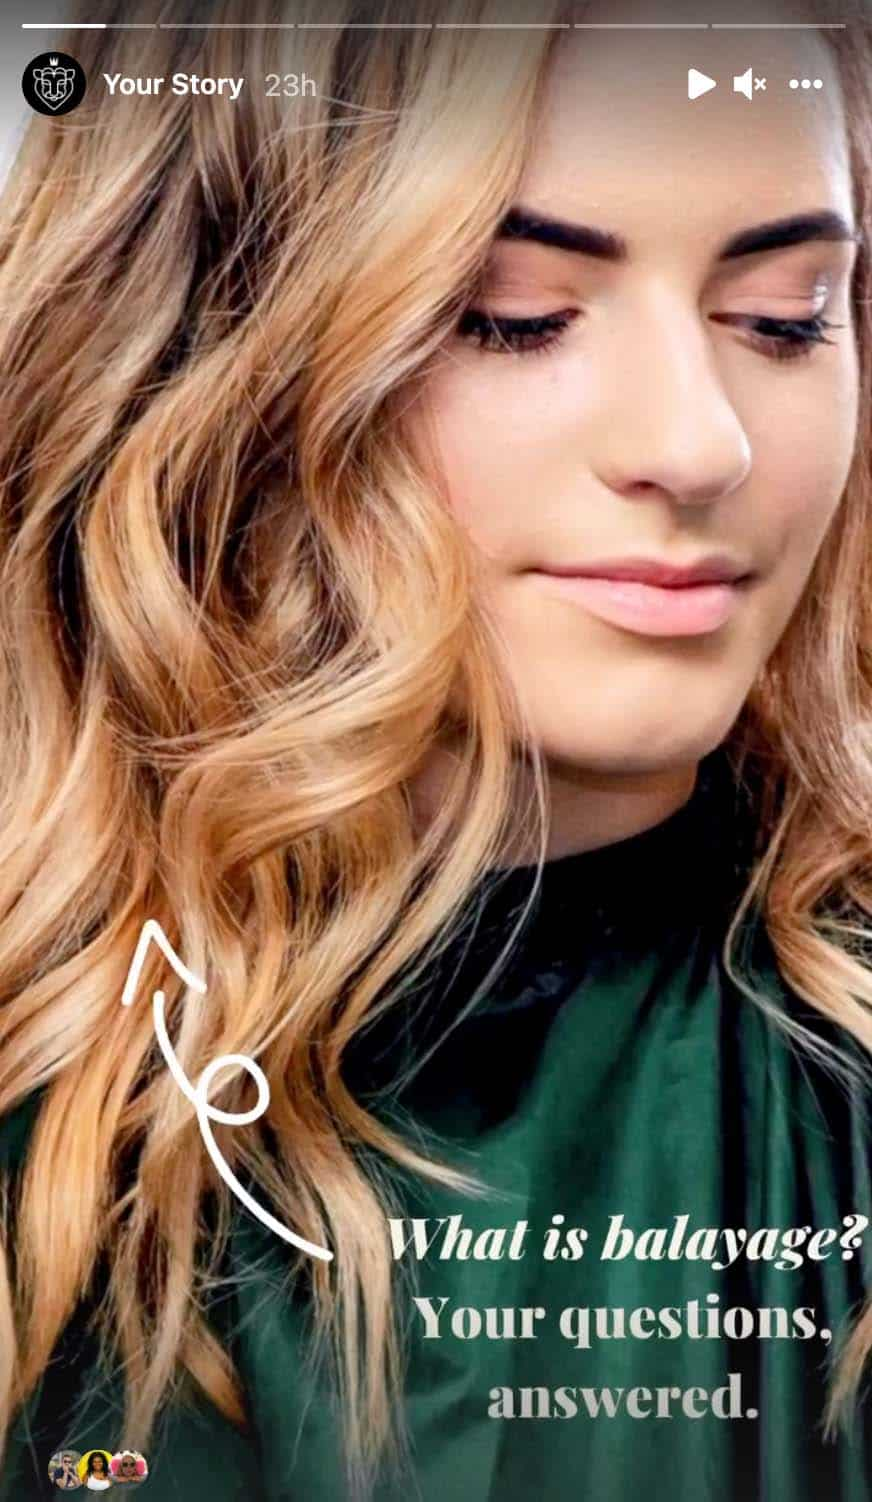 what is balayage? your questions answered instagram story